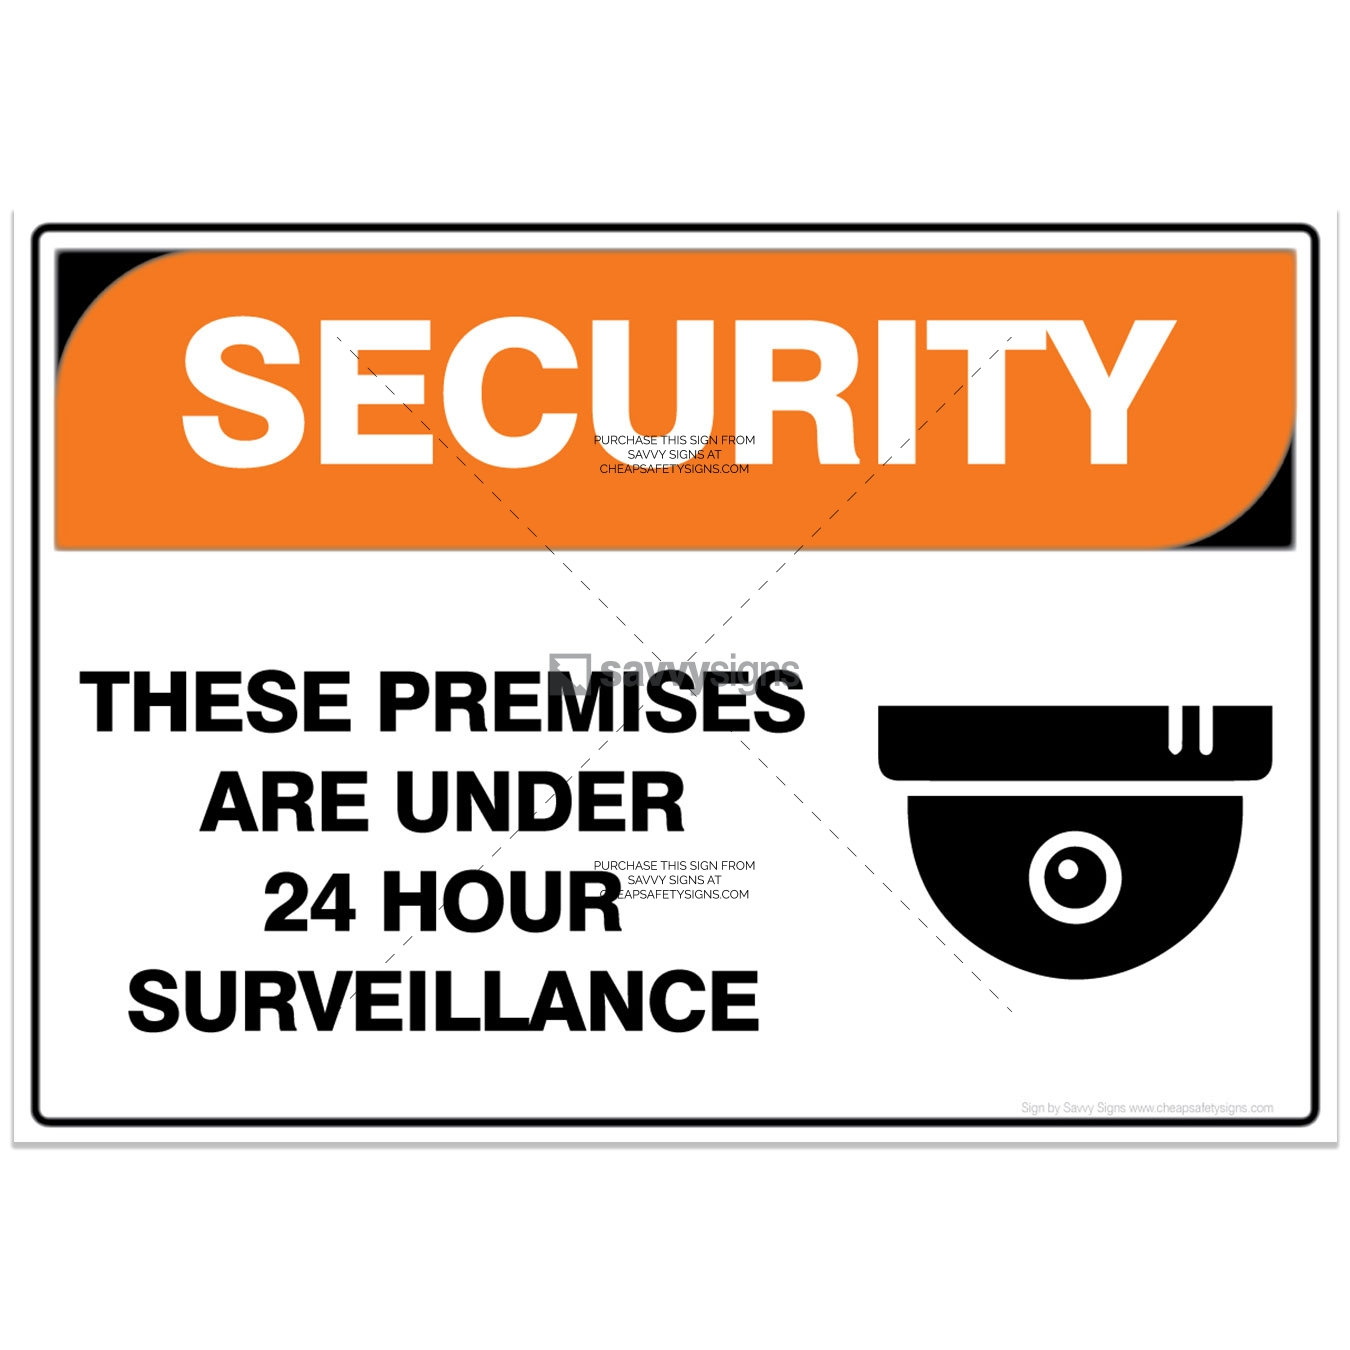 SSSEC3021-SECURITY-Workplace-Safety-Signs_Savvy-Signs_v3